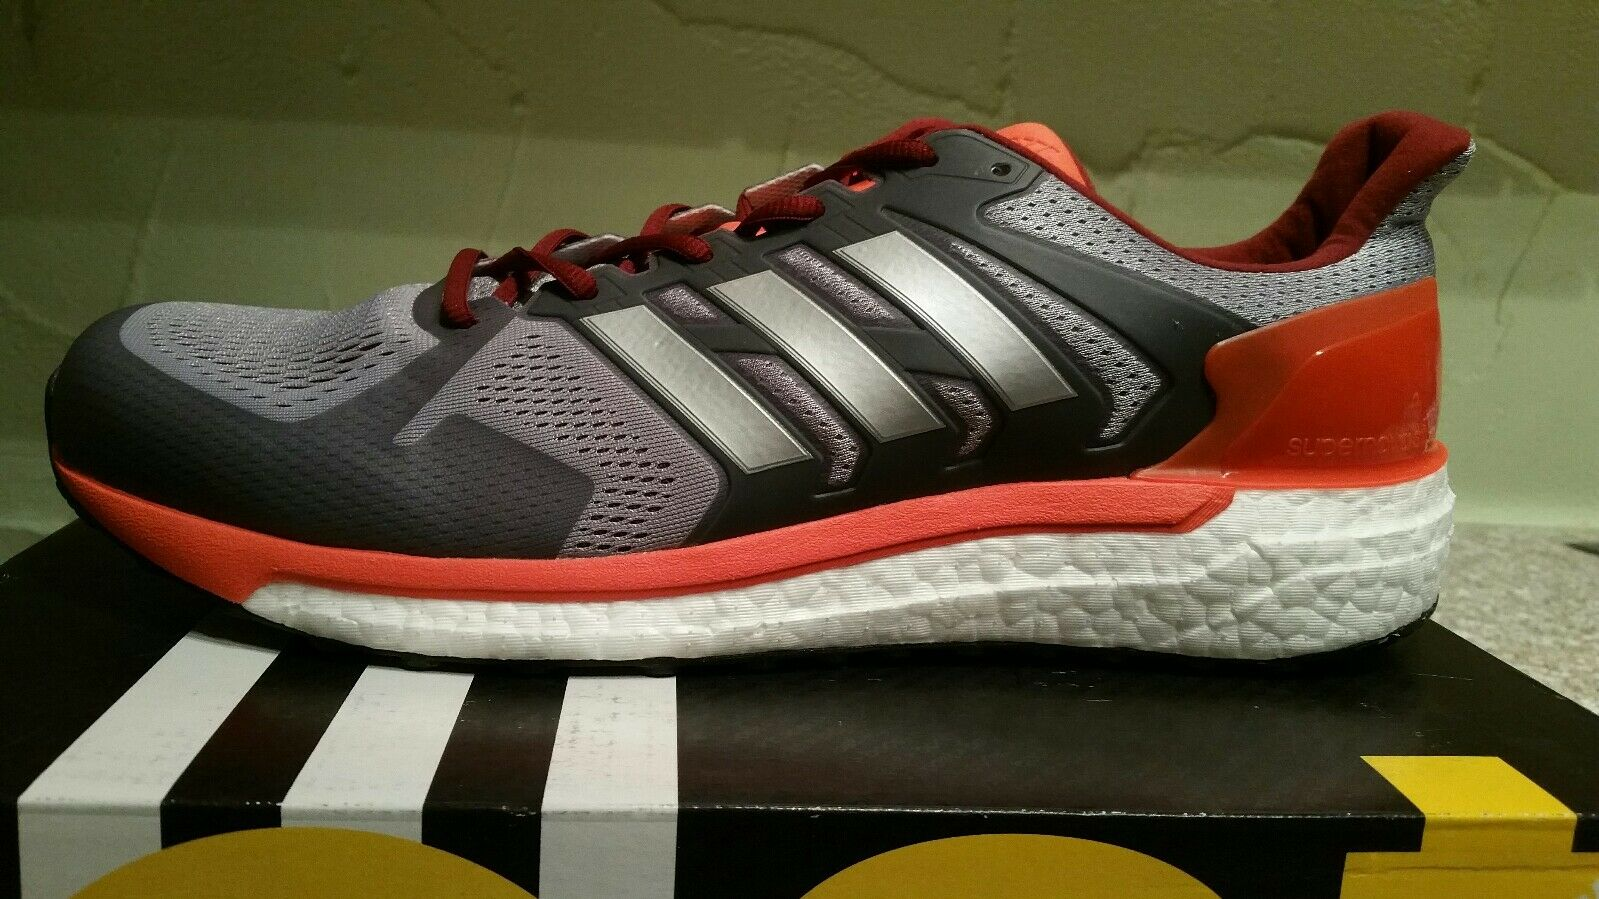 NEW ADIDAS MEN'S SUPERNOVA ST M BOOST RUNNING SNEAKERS SHOES SIZE 8 BB0992